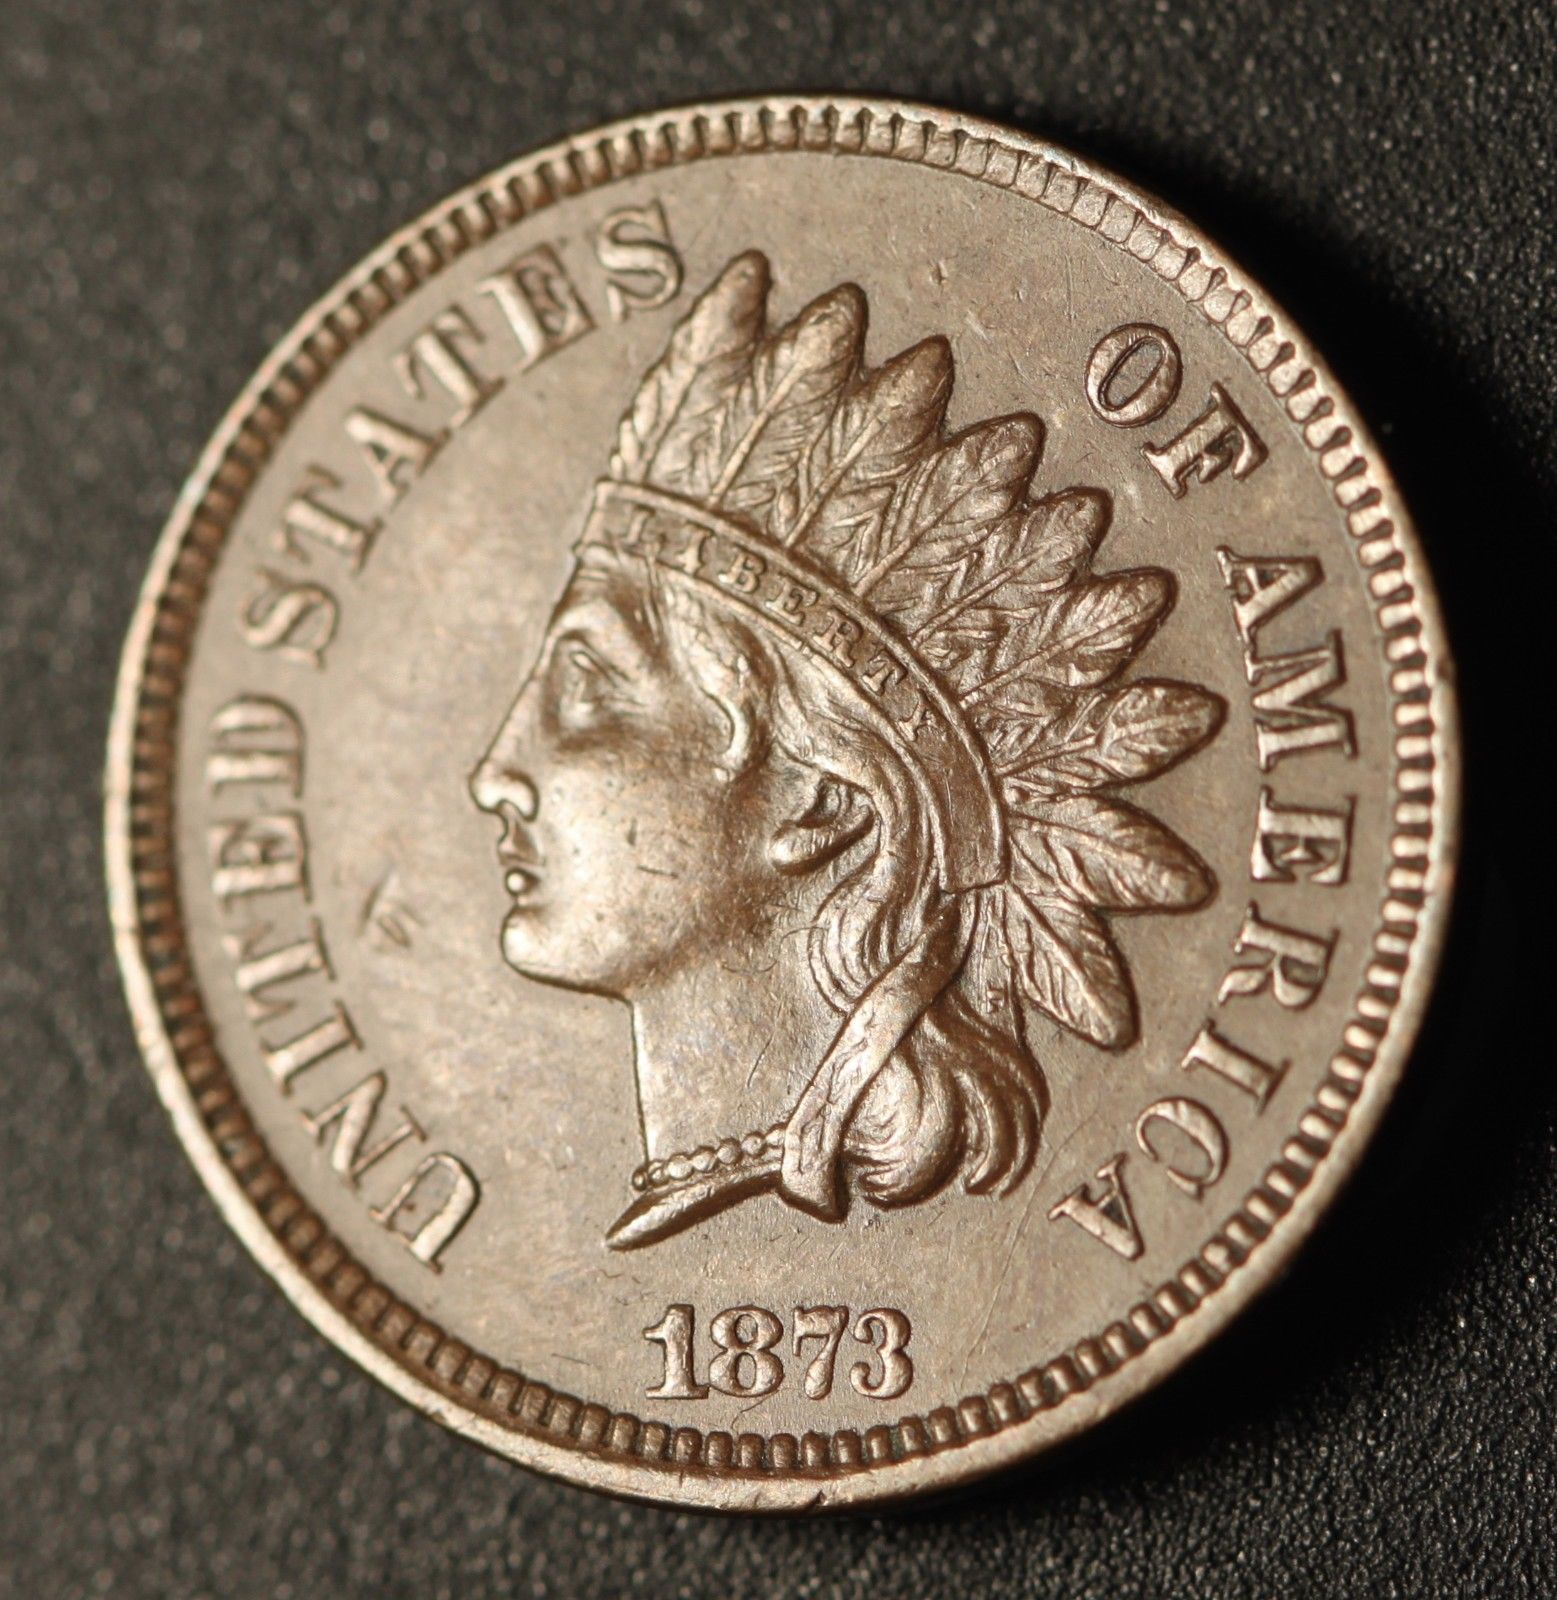 1873 Open 3 ODD-002 - Indian Head Penny - Photo by Ed Nathanson